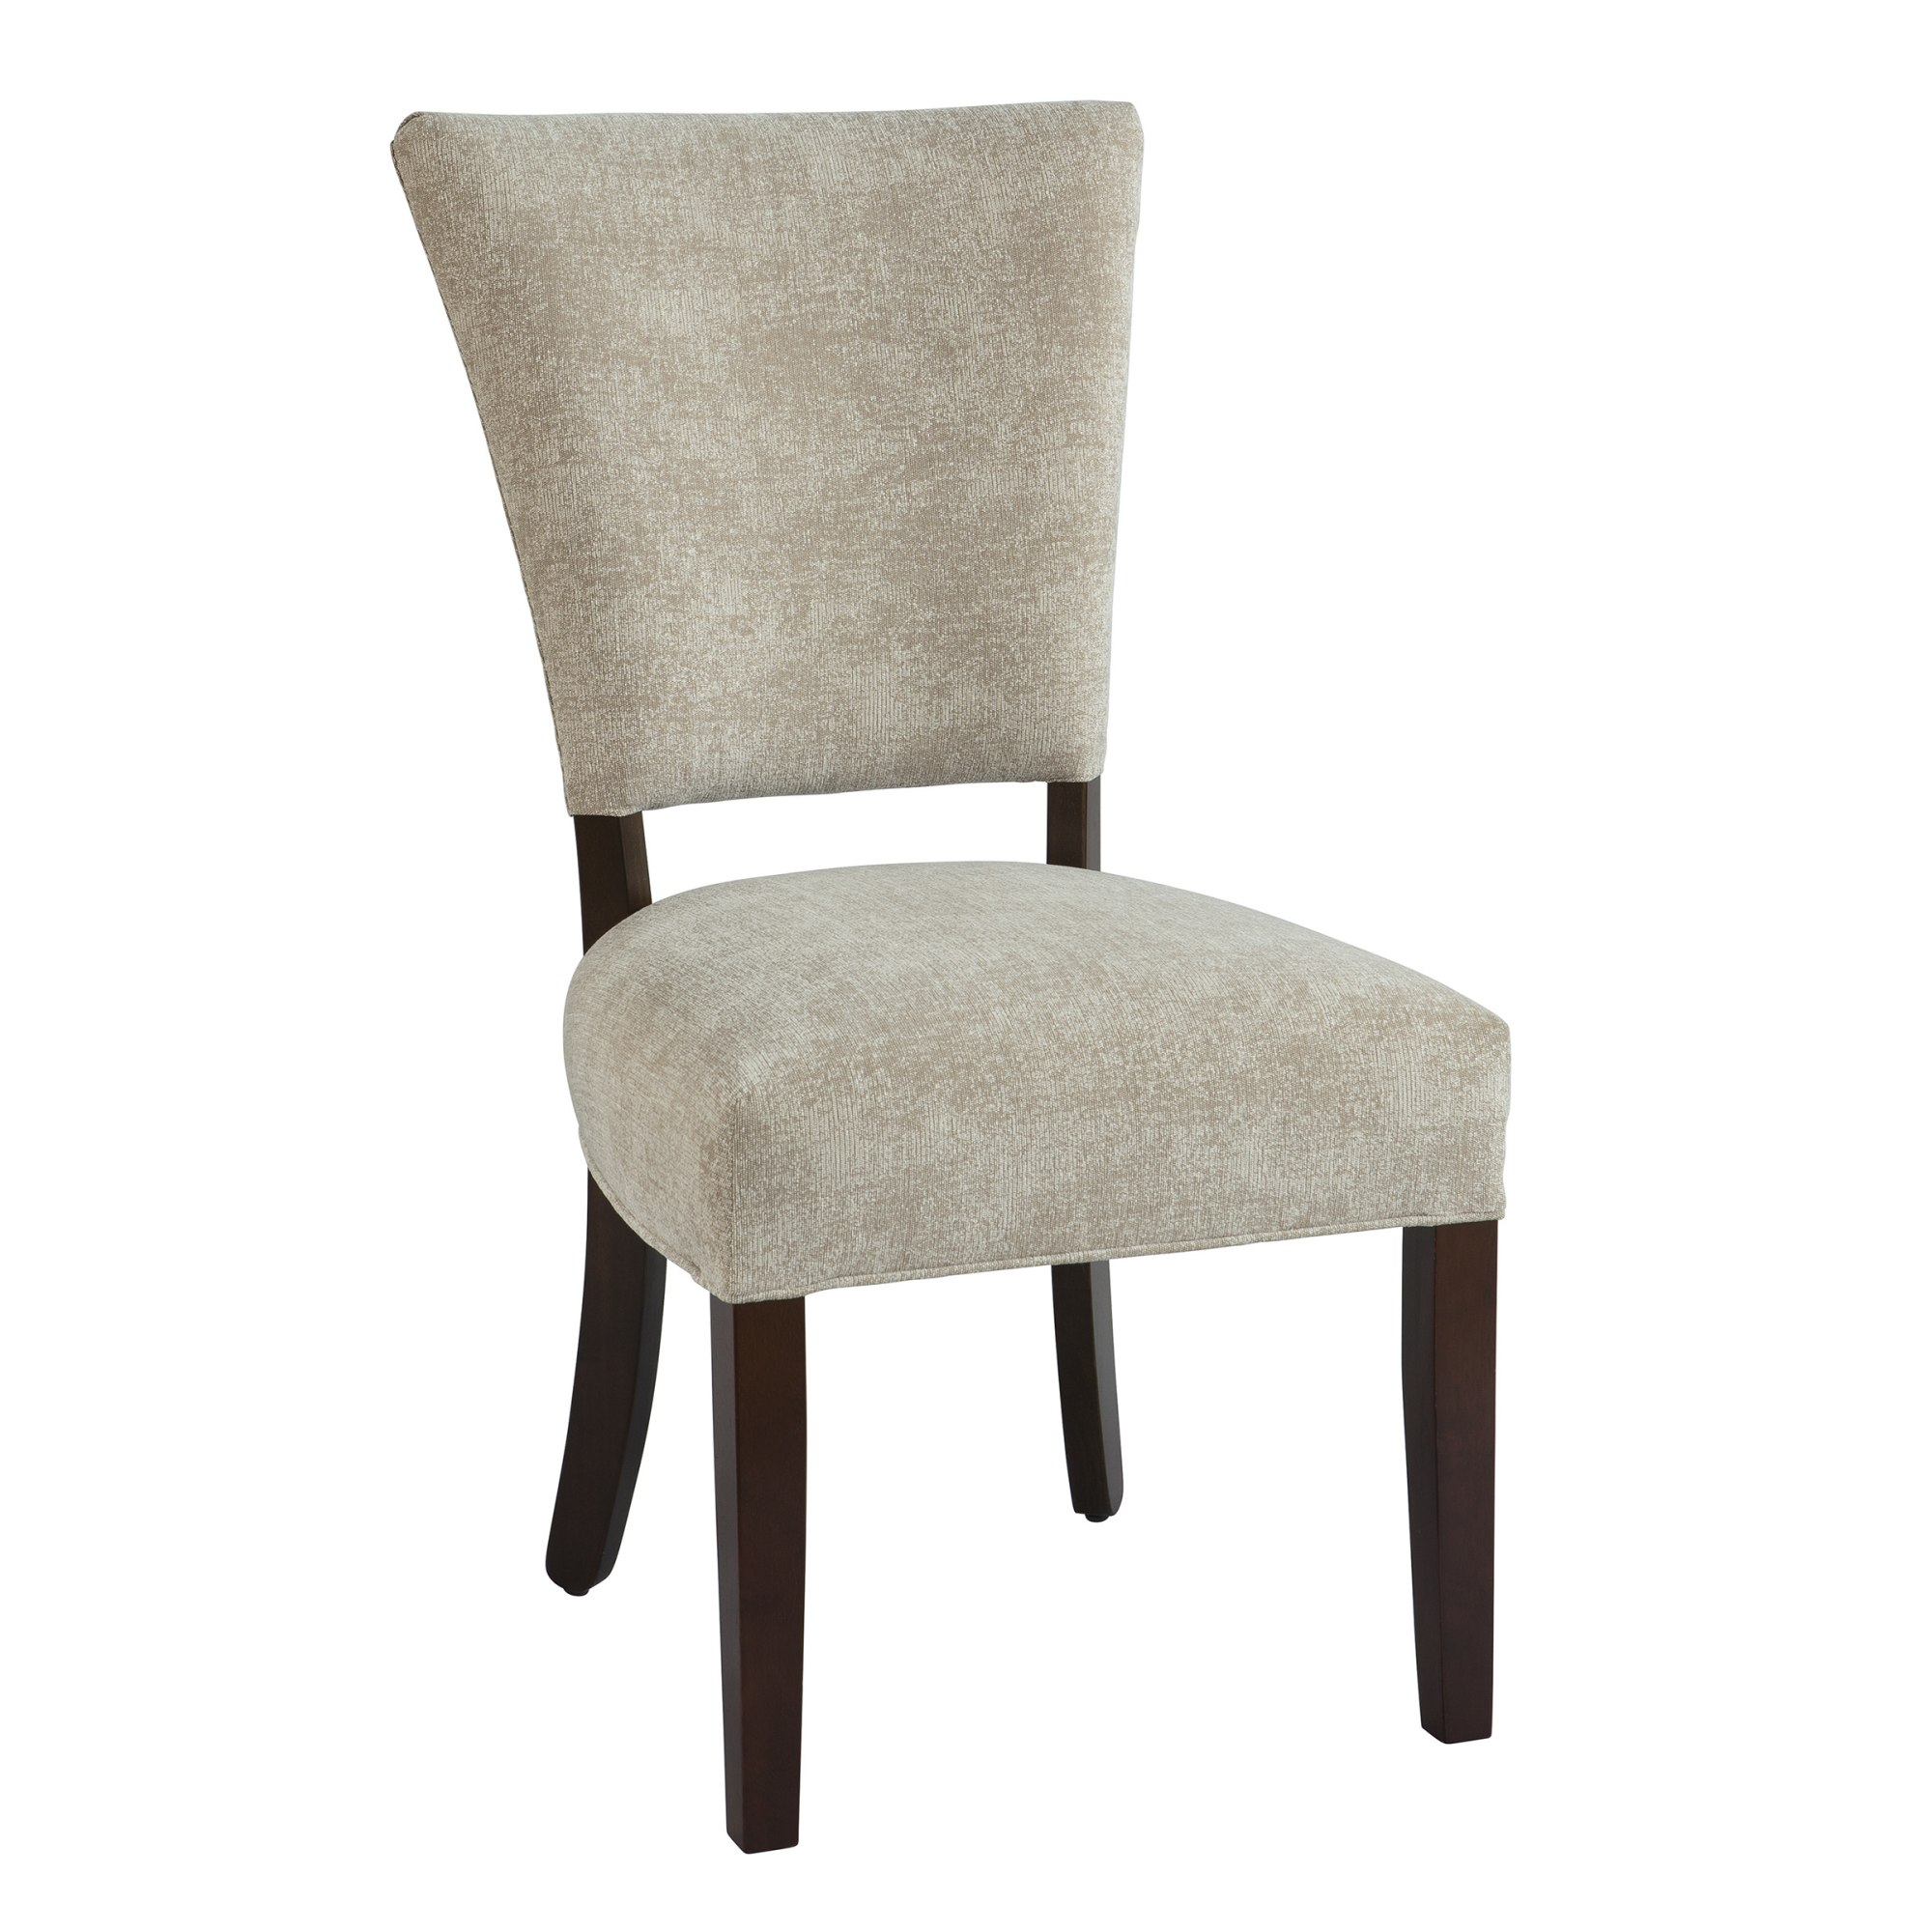 Image for 7263 Charlotte Dining Chair from Hekman Official Website